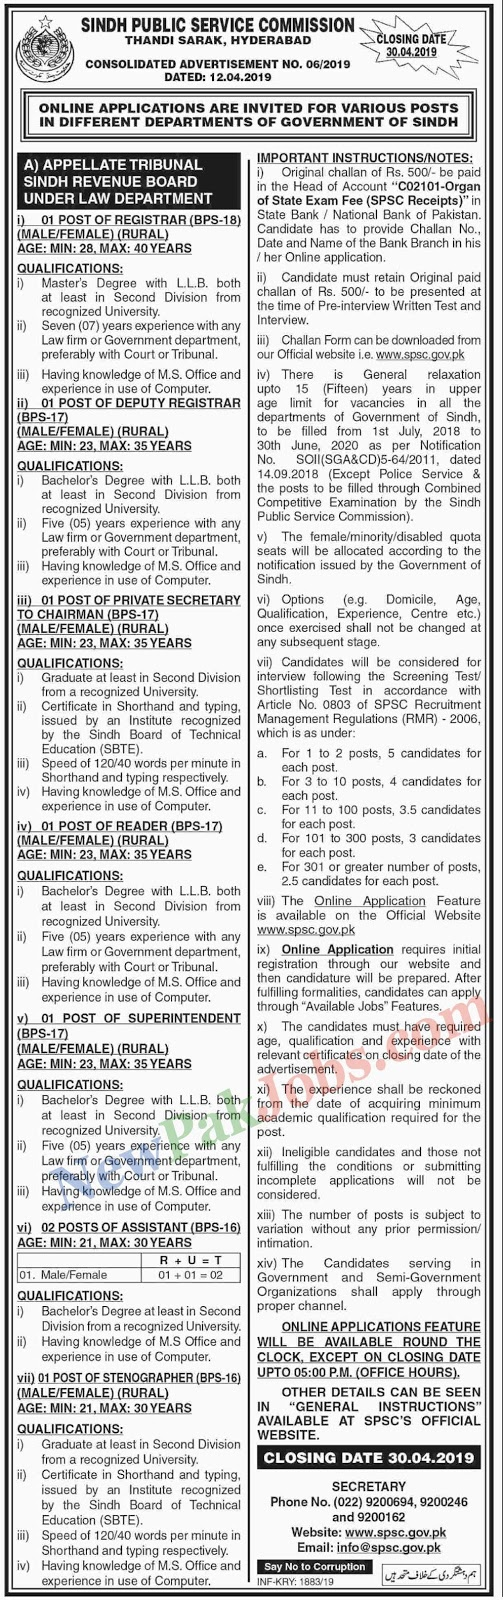 Sindh Public Service Commission SPSC Jobs Advertisement 06/2019